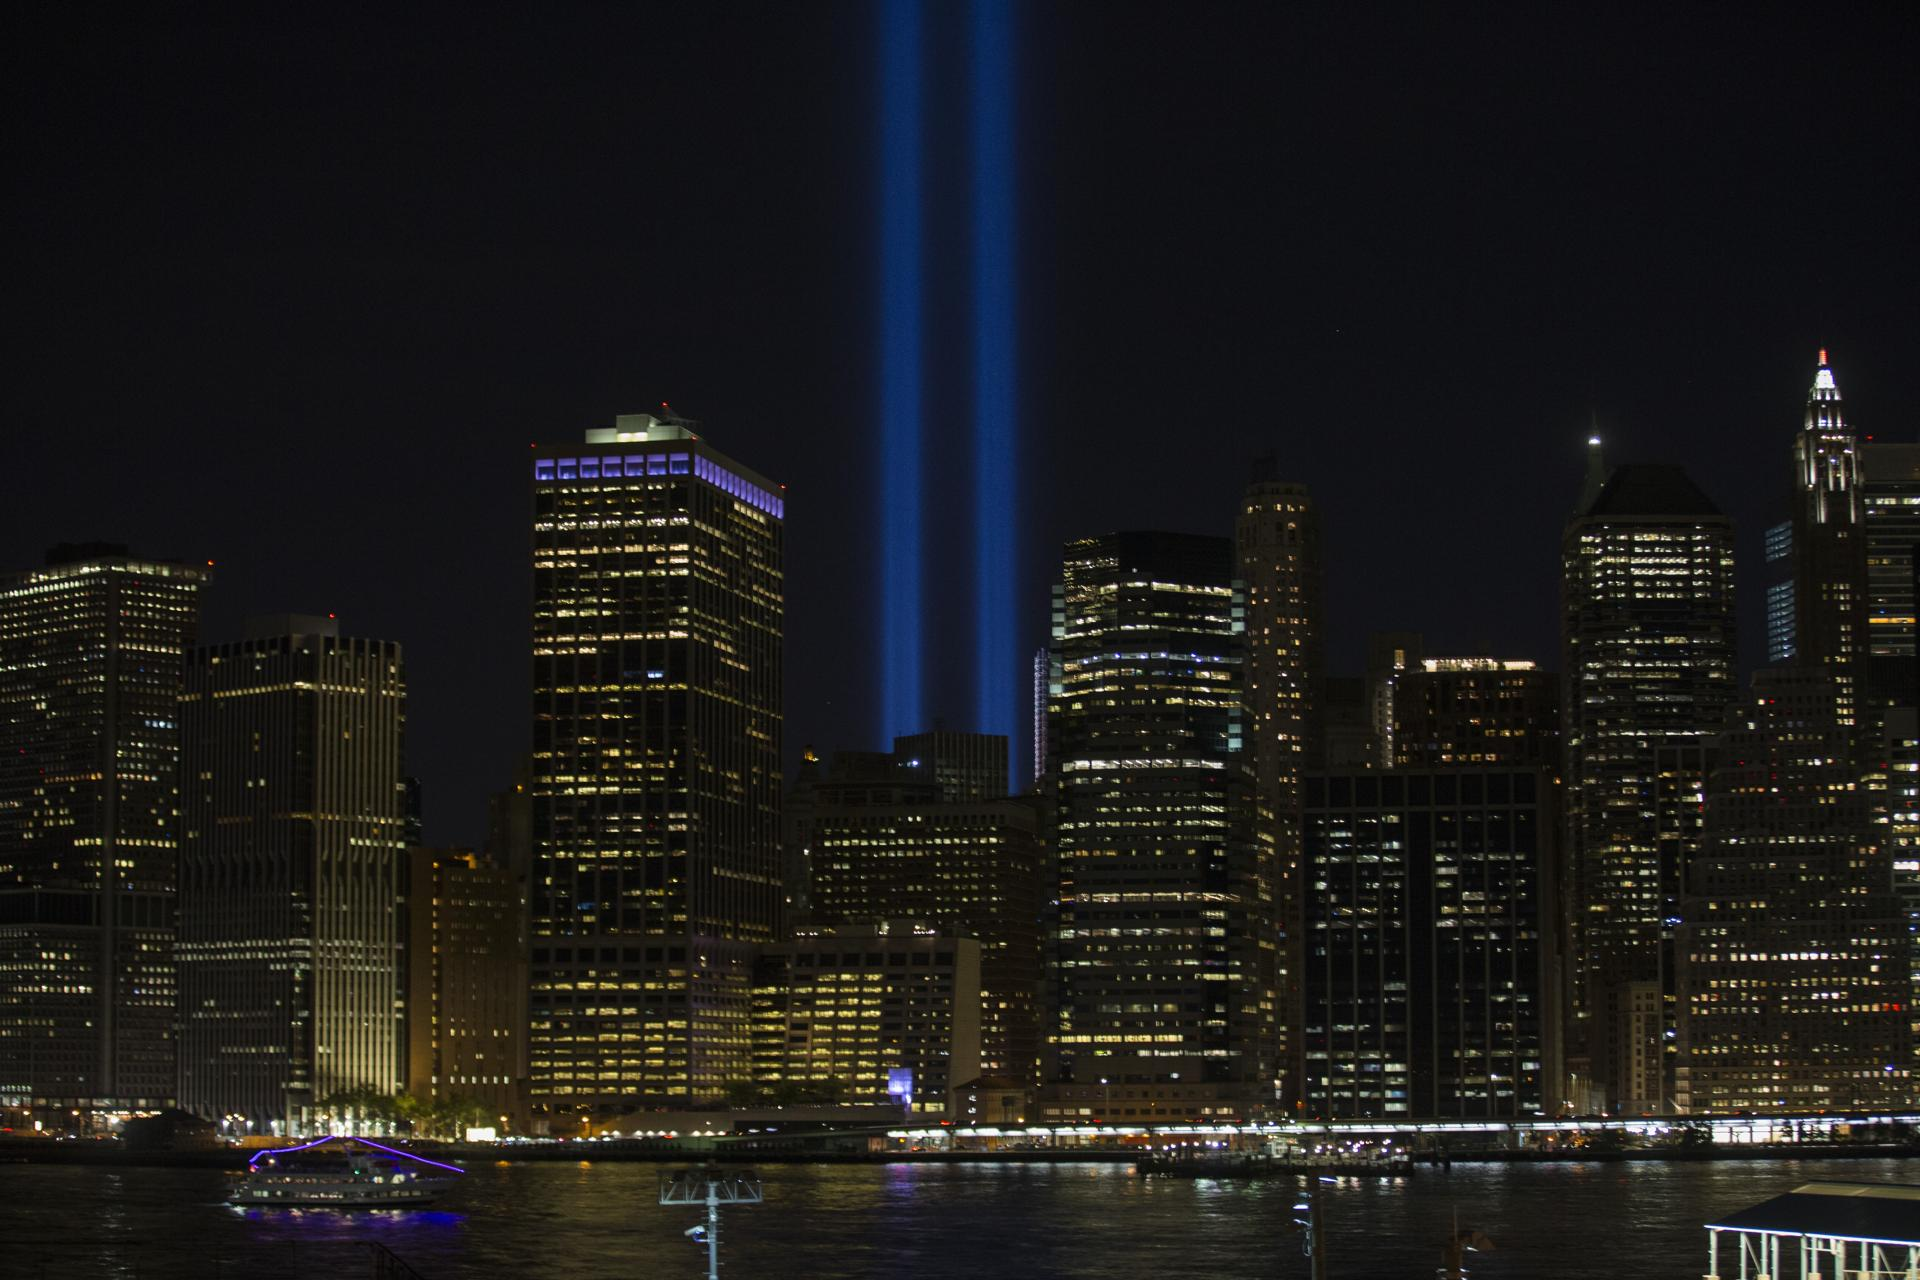 NYC's 'Tribute in Light' beams for Sept. 11 anniversary - The ...